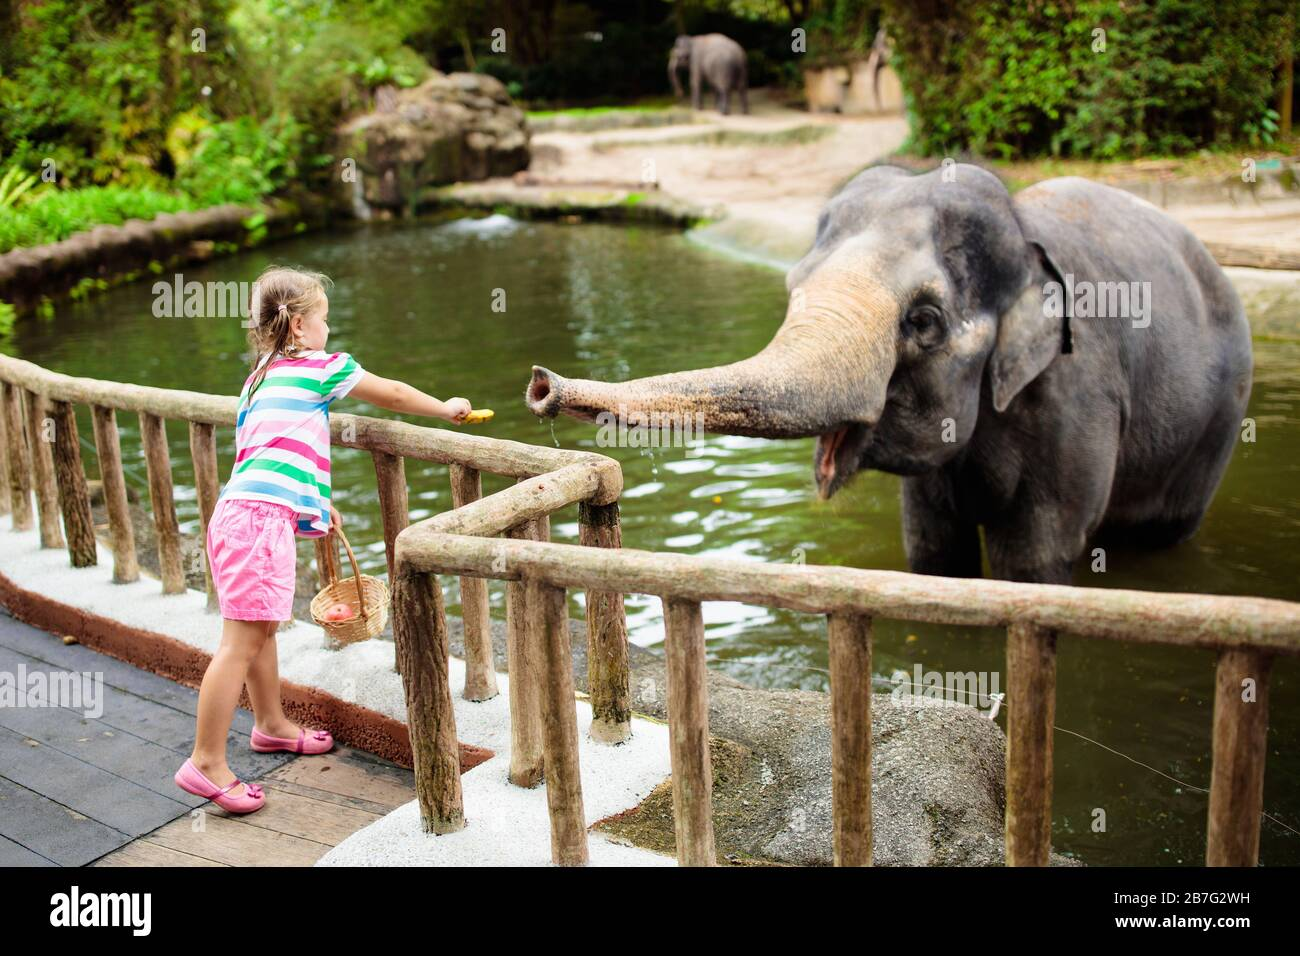 Family feeding elephant in zoo. Children feed Asian elephants in ...